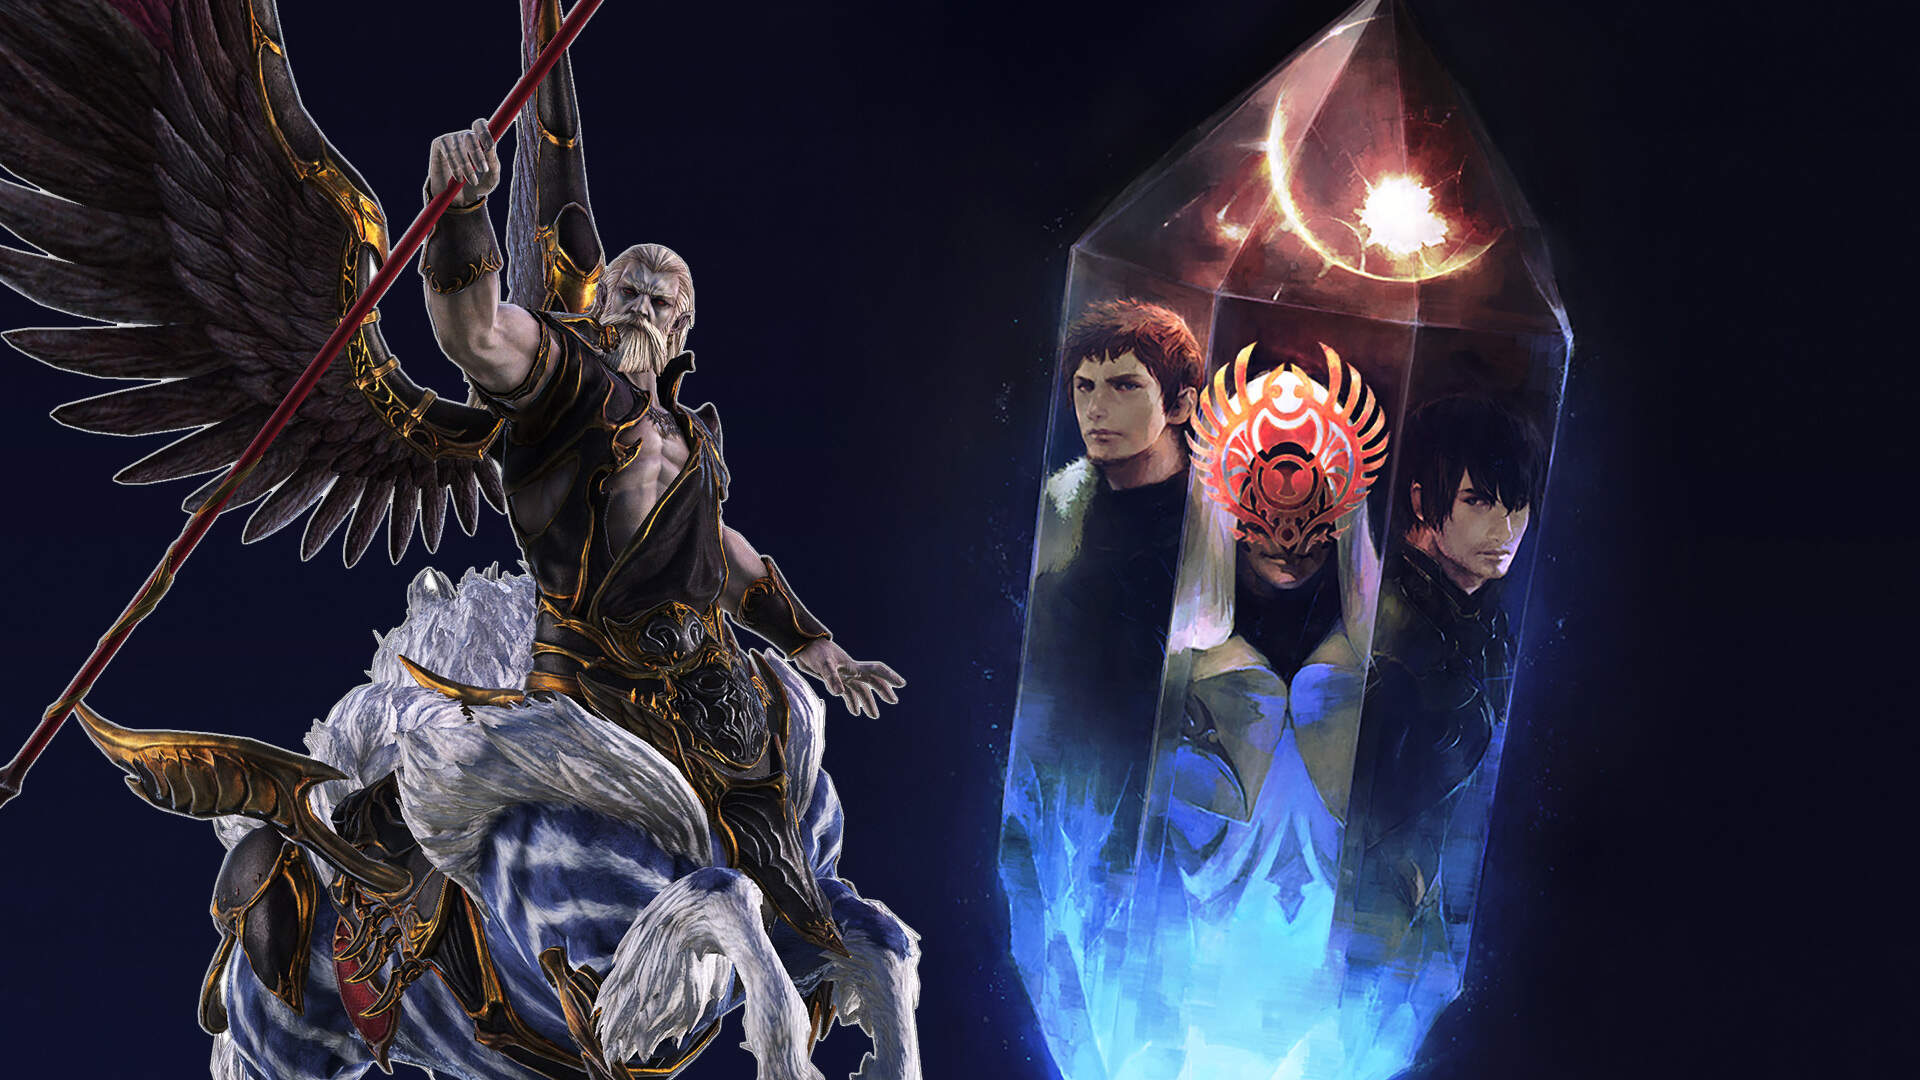 Final Fantasy 14's Naoki Yoshida Would Love to Collaborate With Blizzard Entertainment